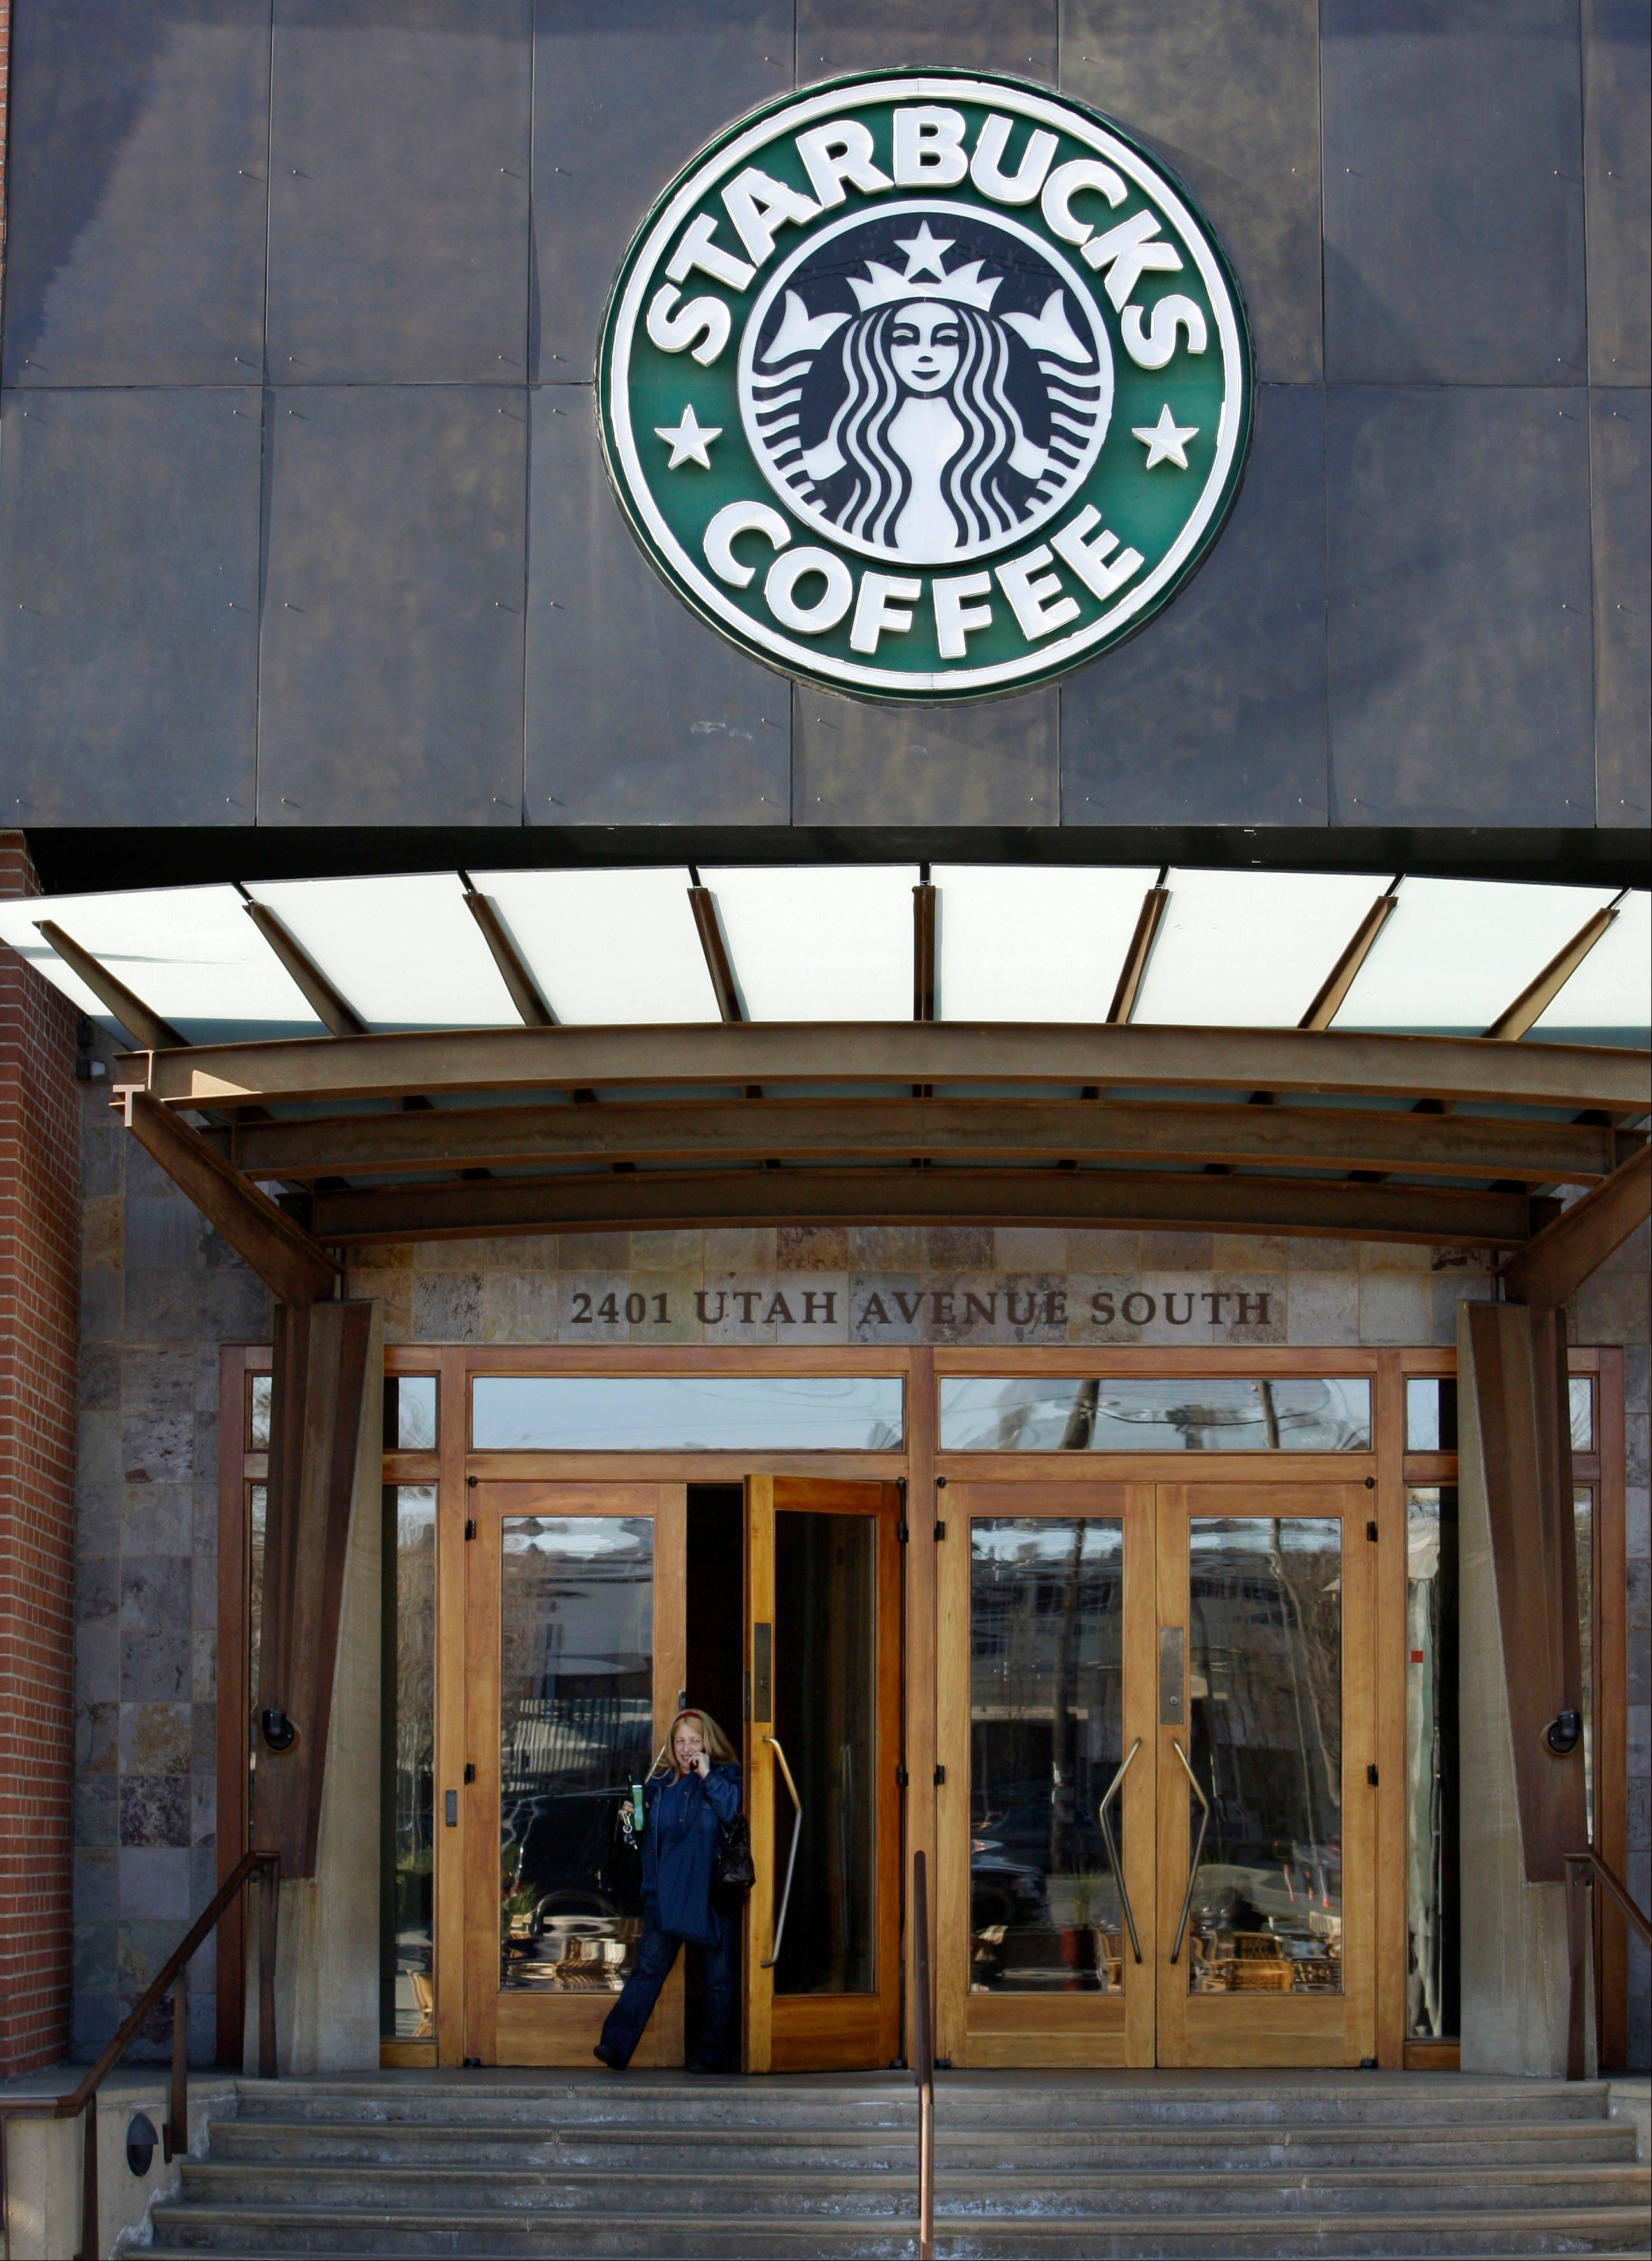 Starbucks says guns are no longer welcome in its cafes, though it is stopping short of an outright ban on firearms.